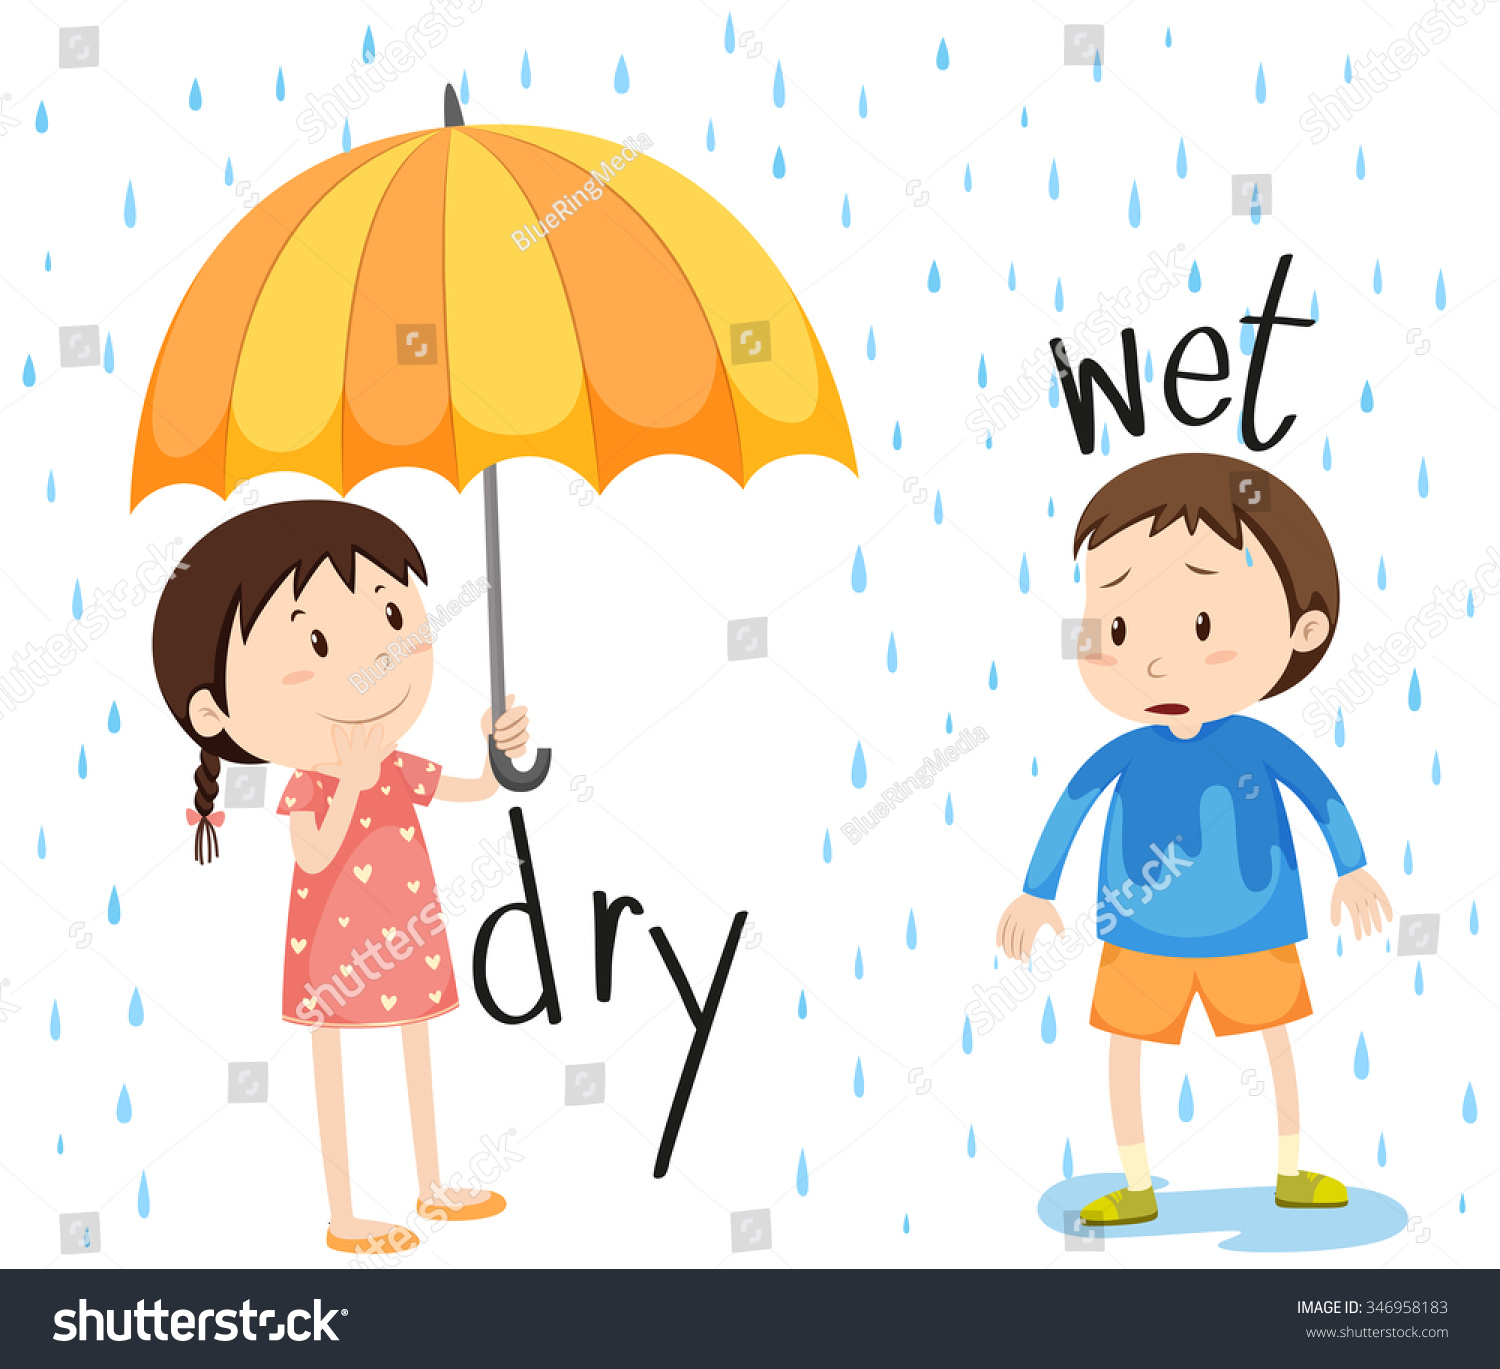 Worksheet Opposite Objects opposite adjective dry wet illustration stock vector 346958183 and illustration